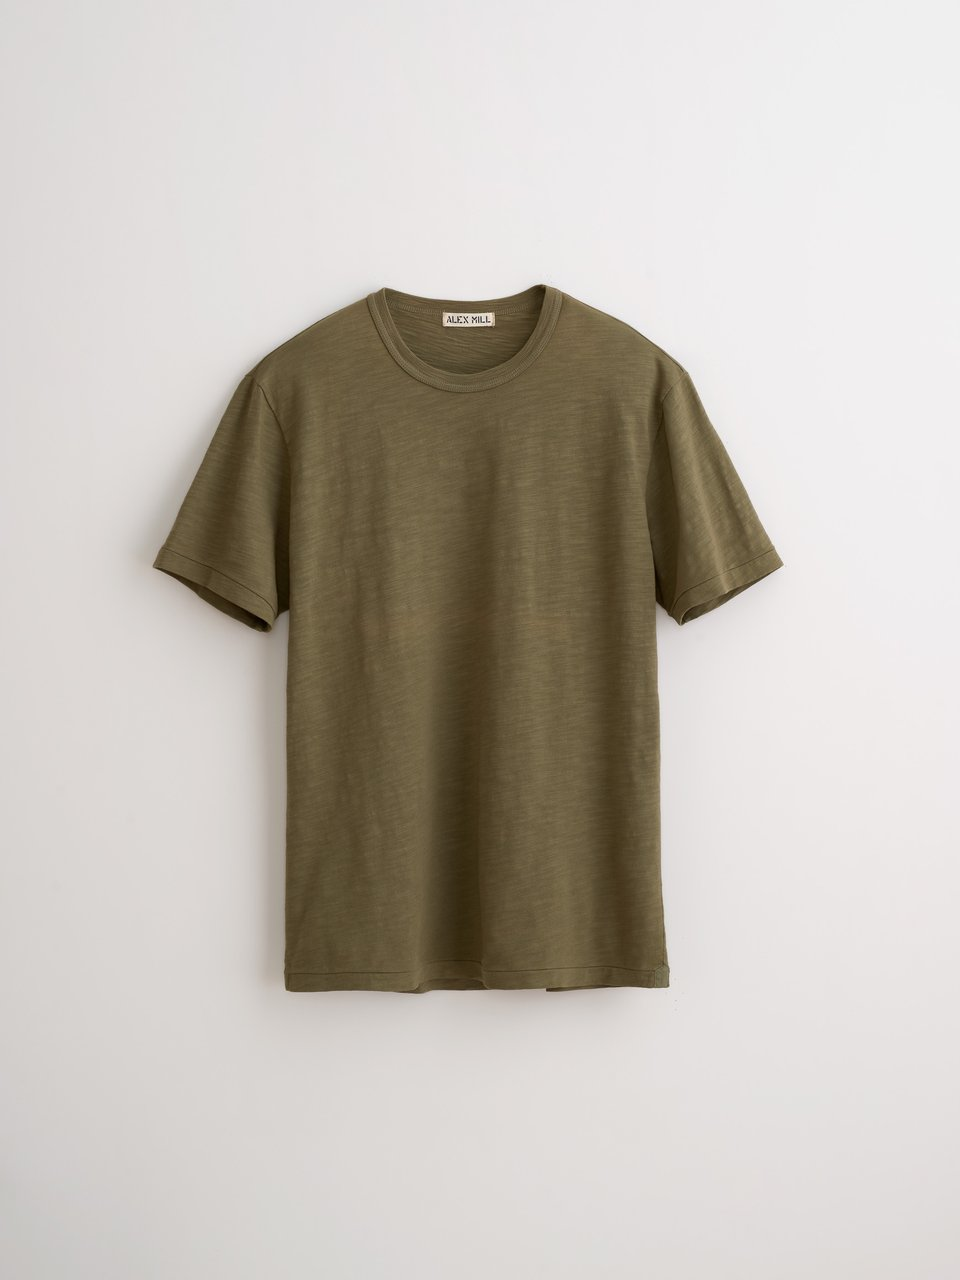 Standard T-Shirt in Slub Cotton (Faded Spruce)